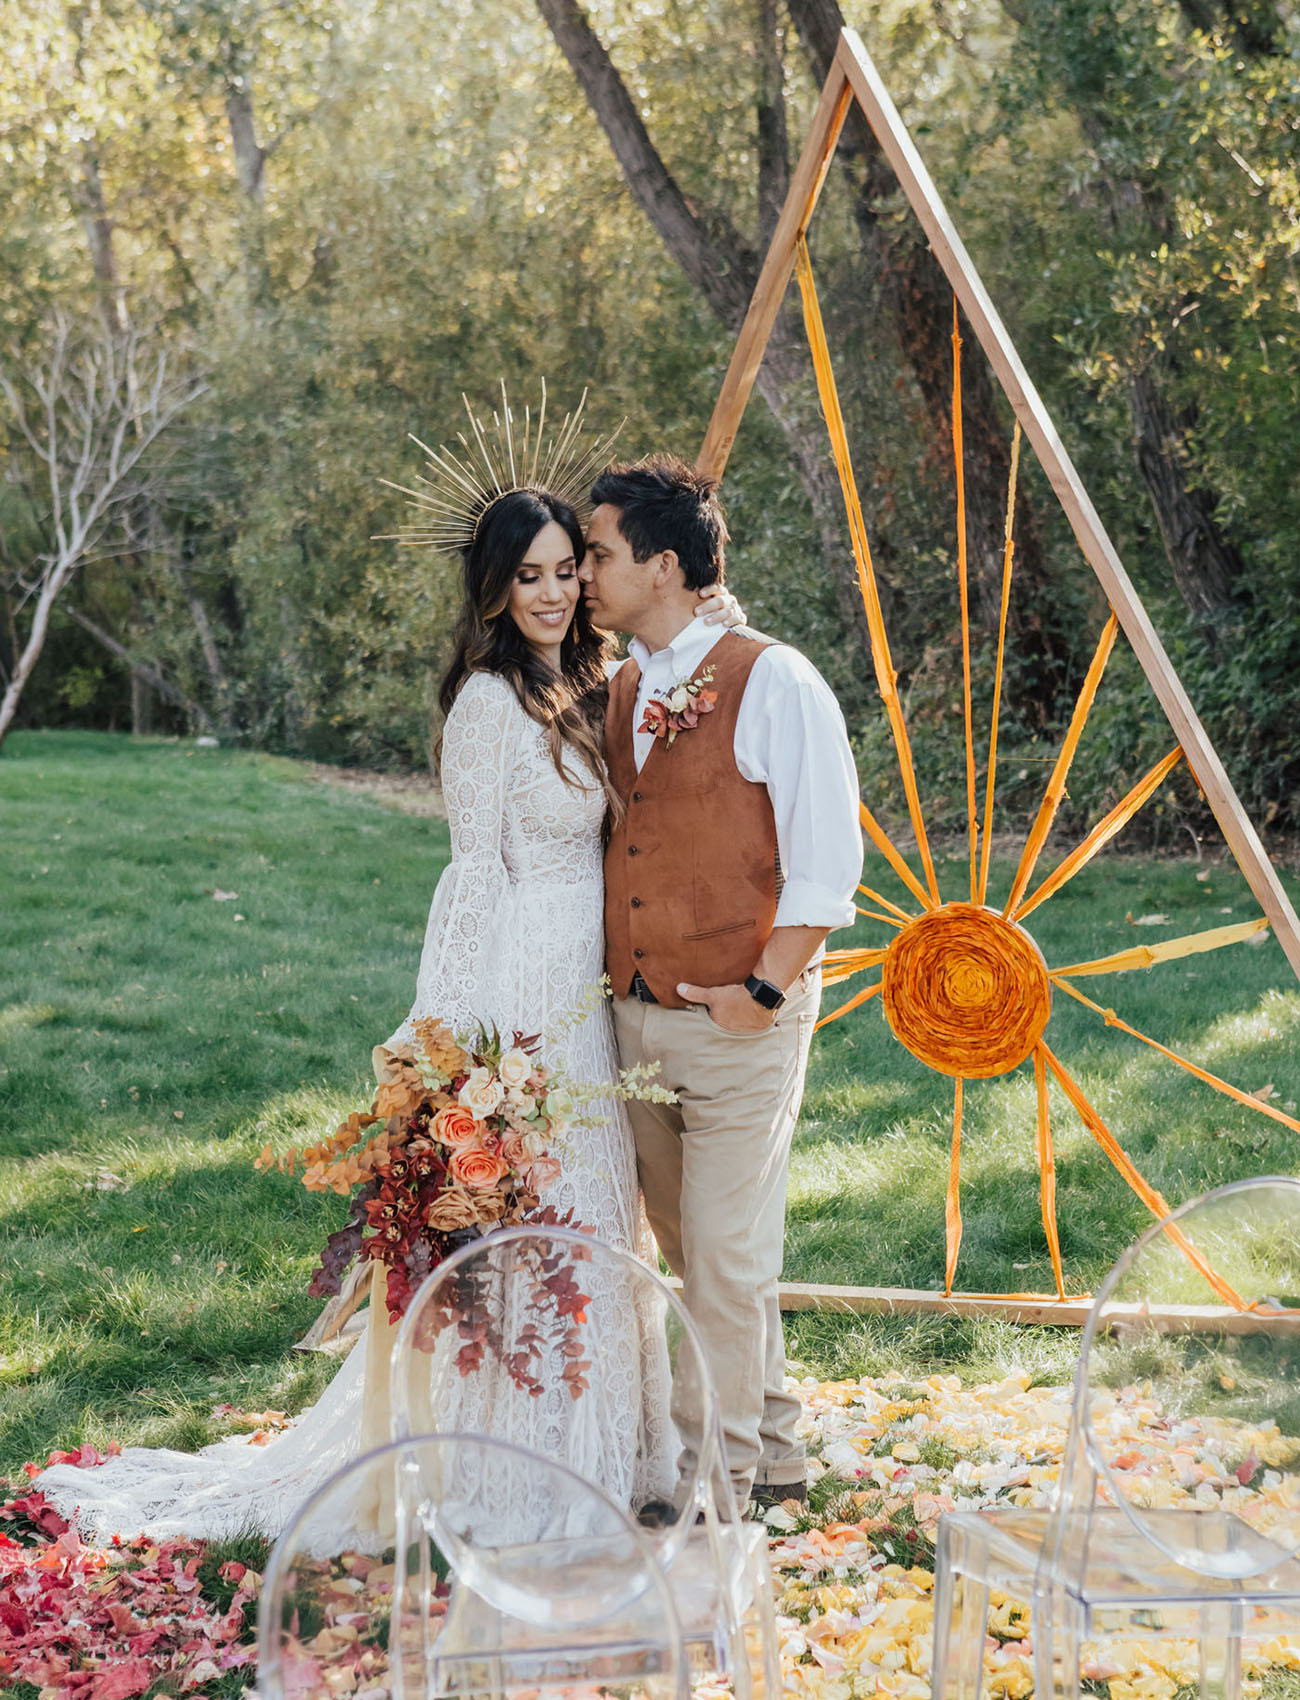 This boho wedding shoot was inspired by sunsets and a bright fall color palette